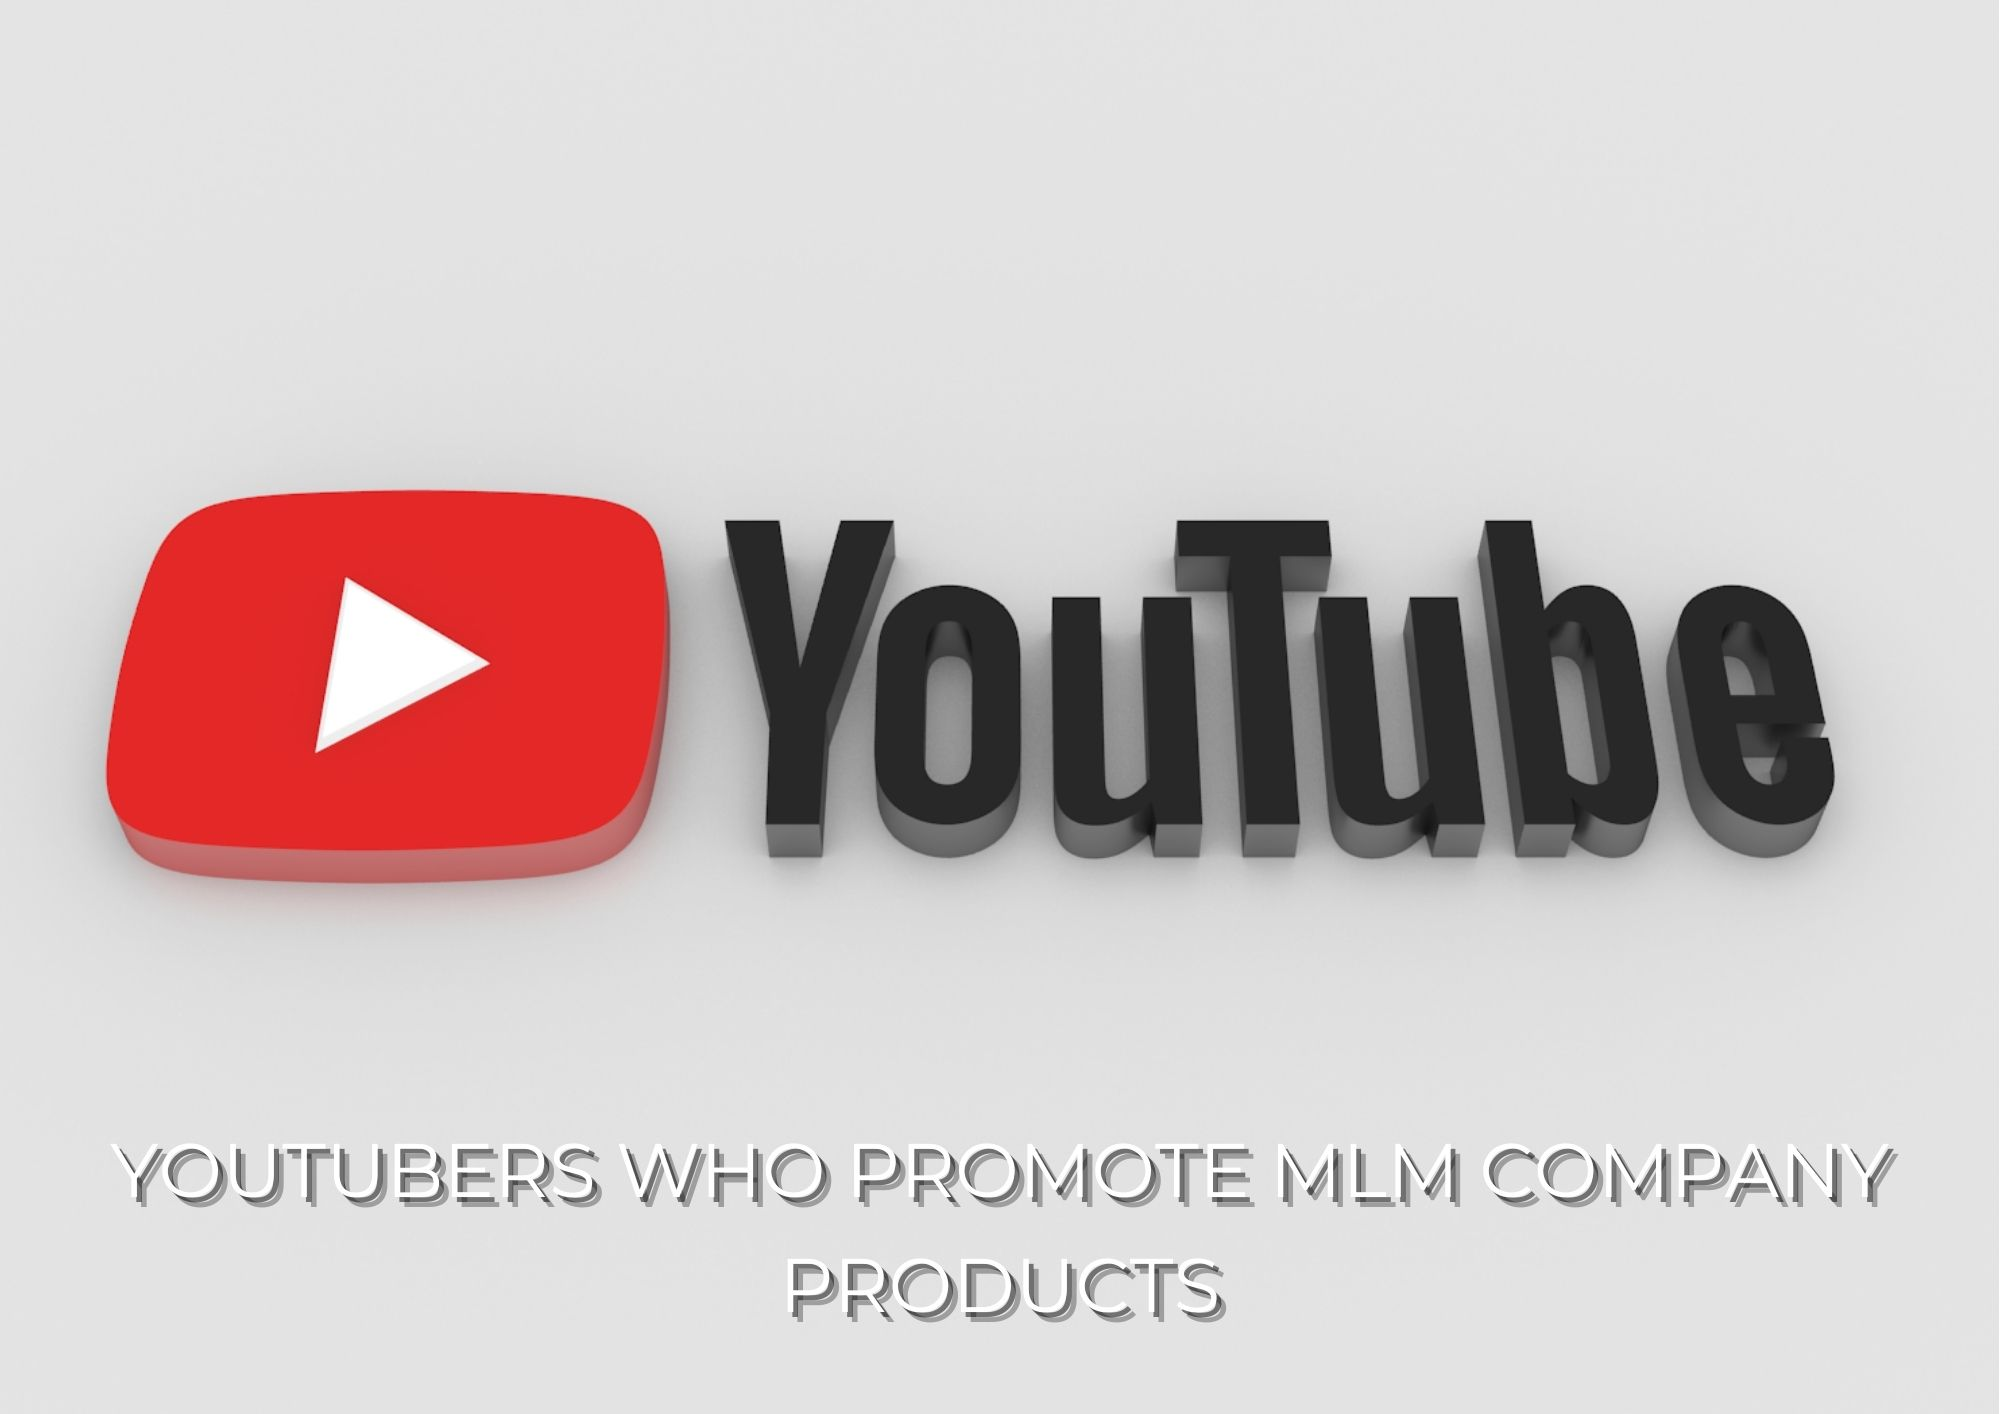 Promote MLM Company Products